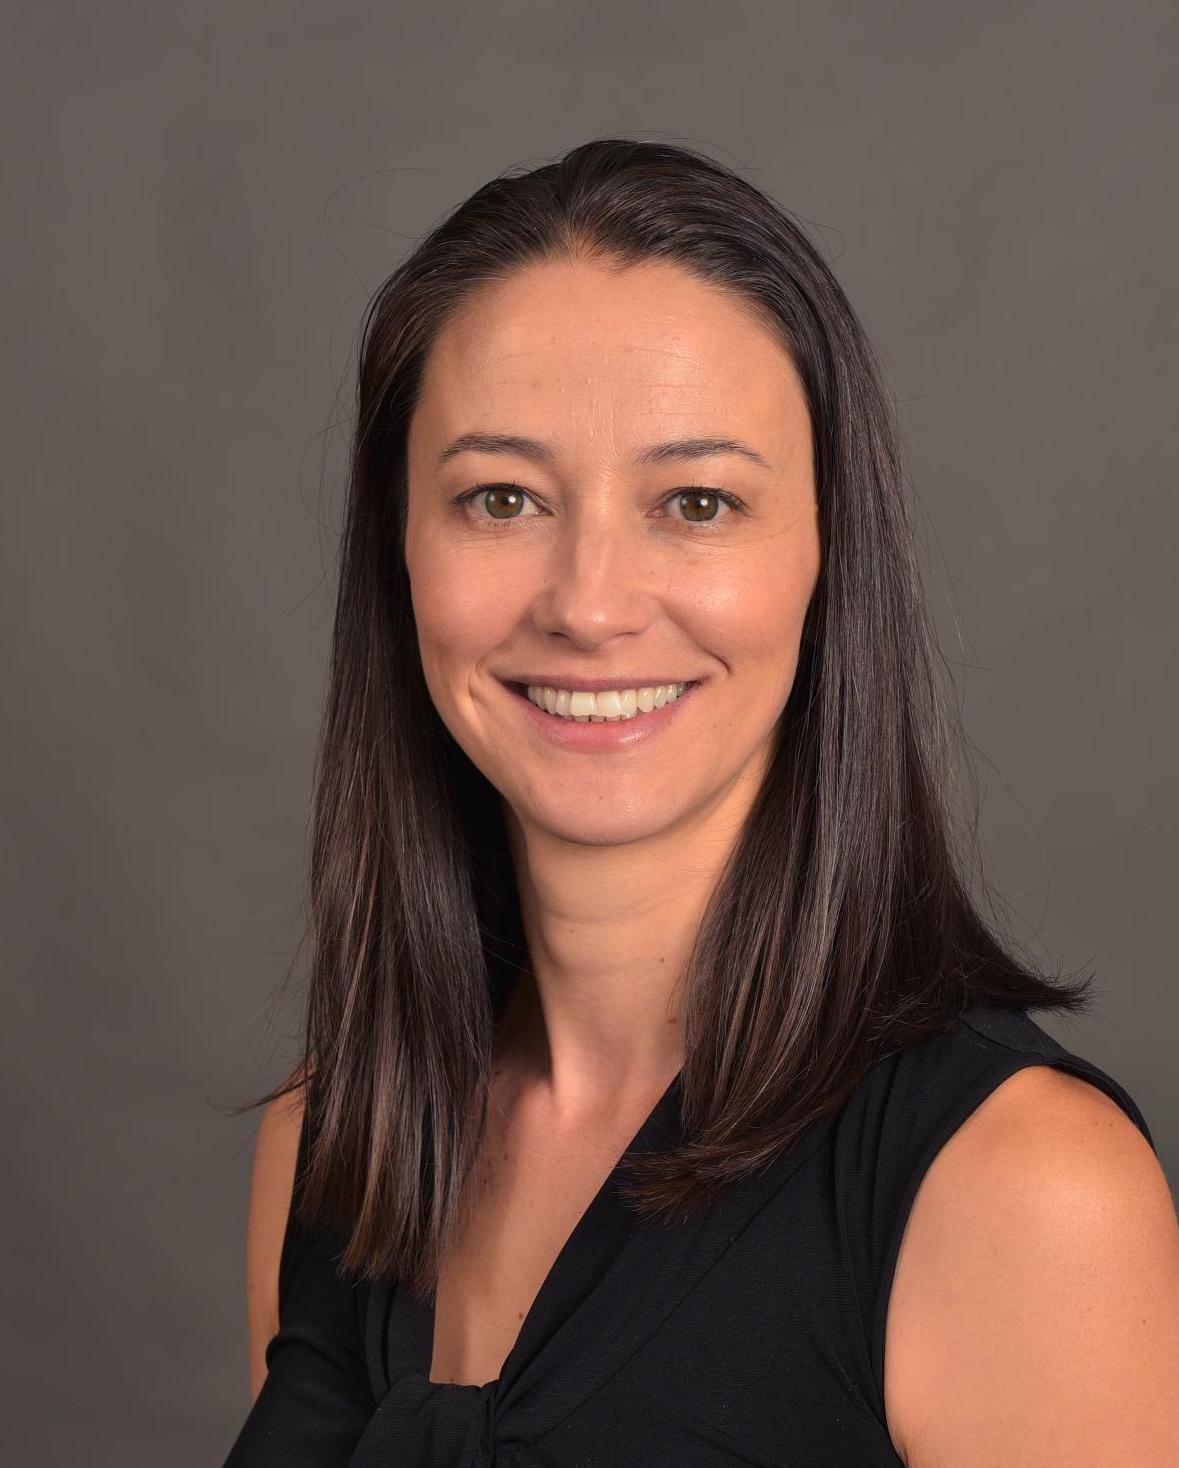 Photo of Dr. Brooke Smith, PhD